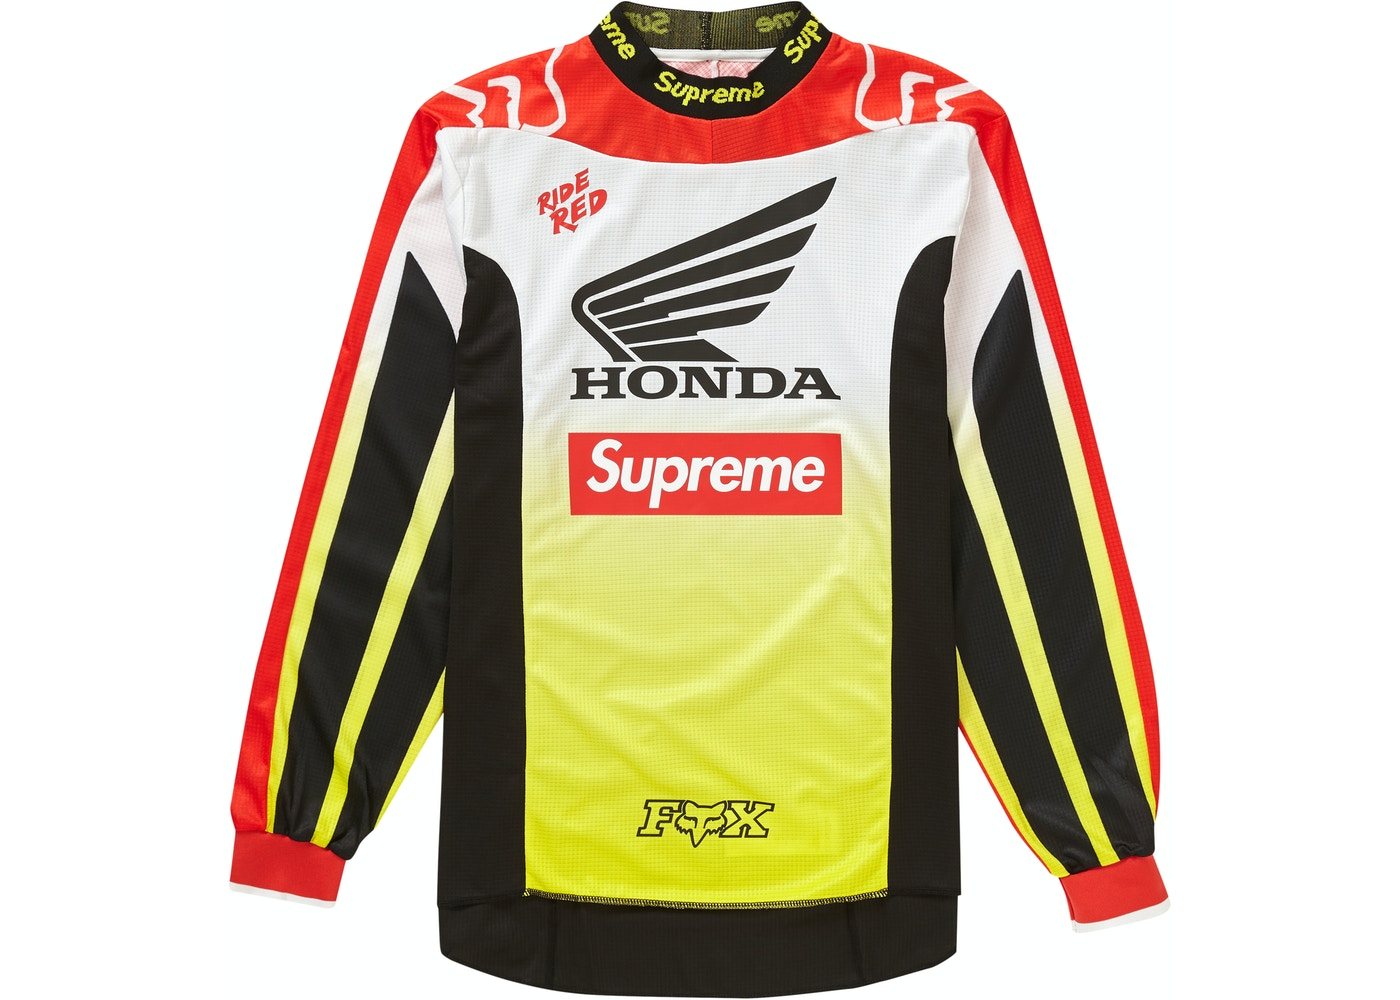 new products quality cheap for sale Supreme Honda Fox Racing Moto Jersey Top Red - FW19